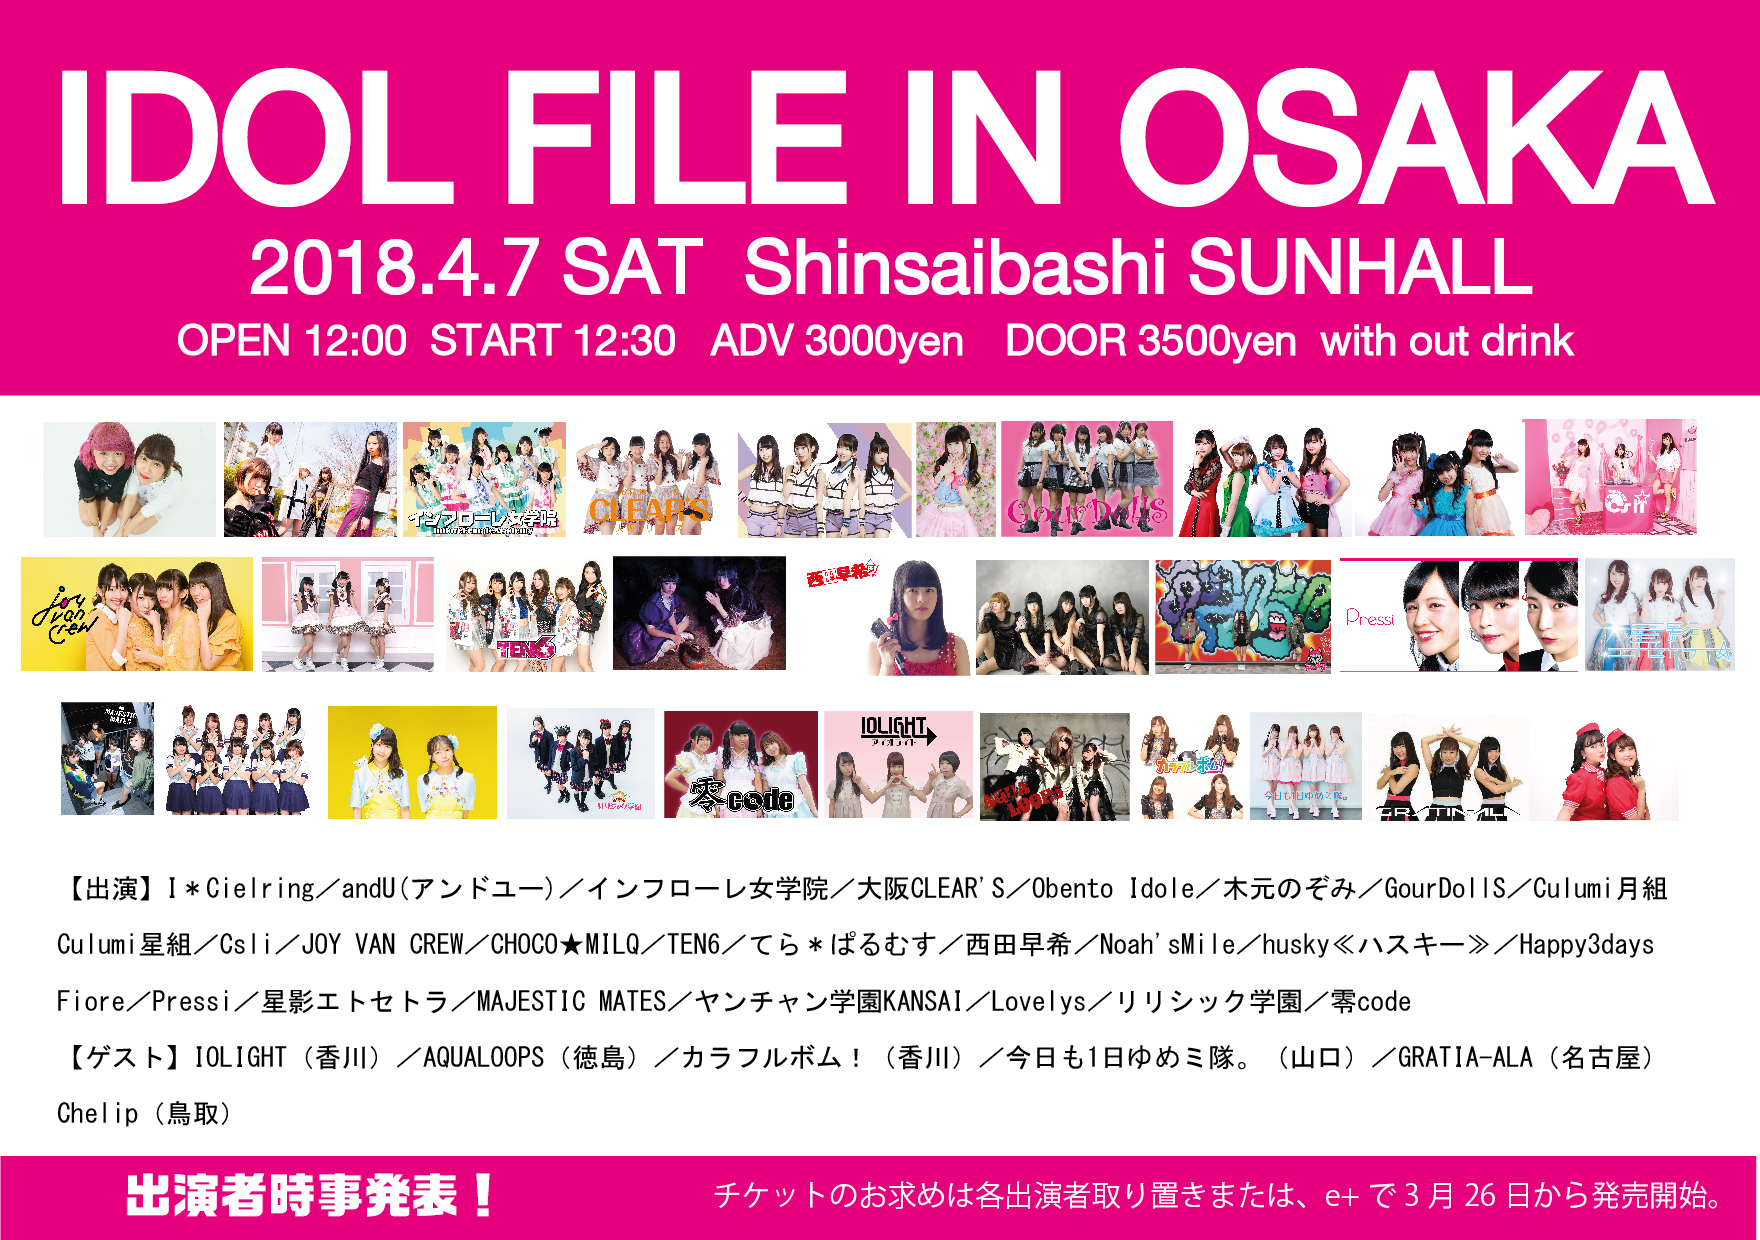 【大阪】心斎橋SANHALL IDOL FILE IN OSAKA